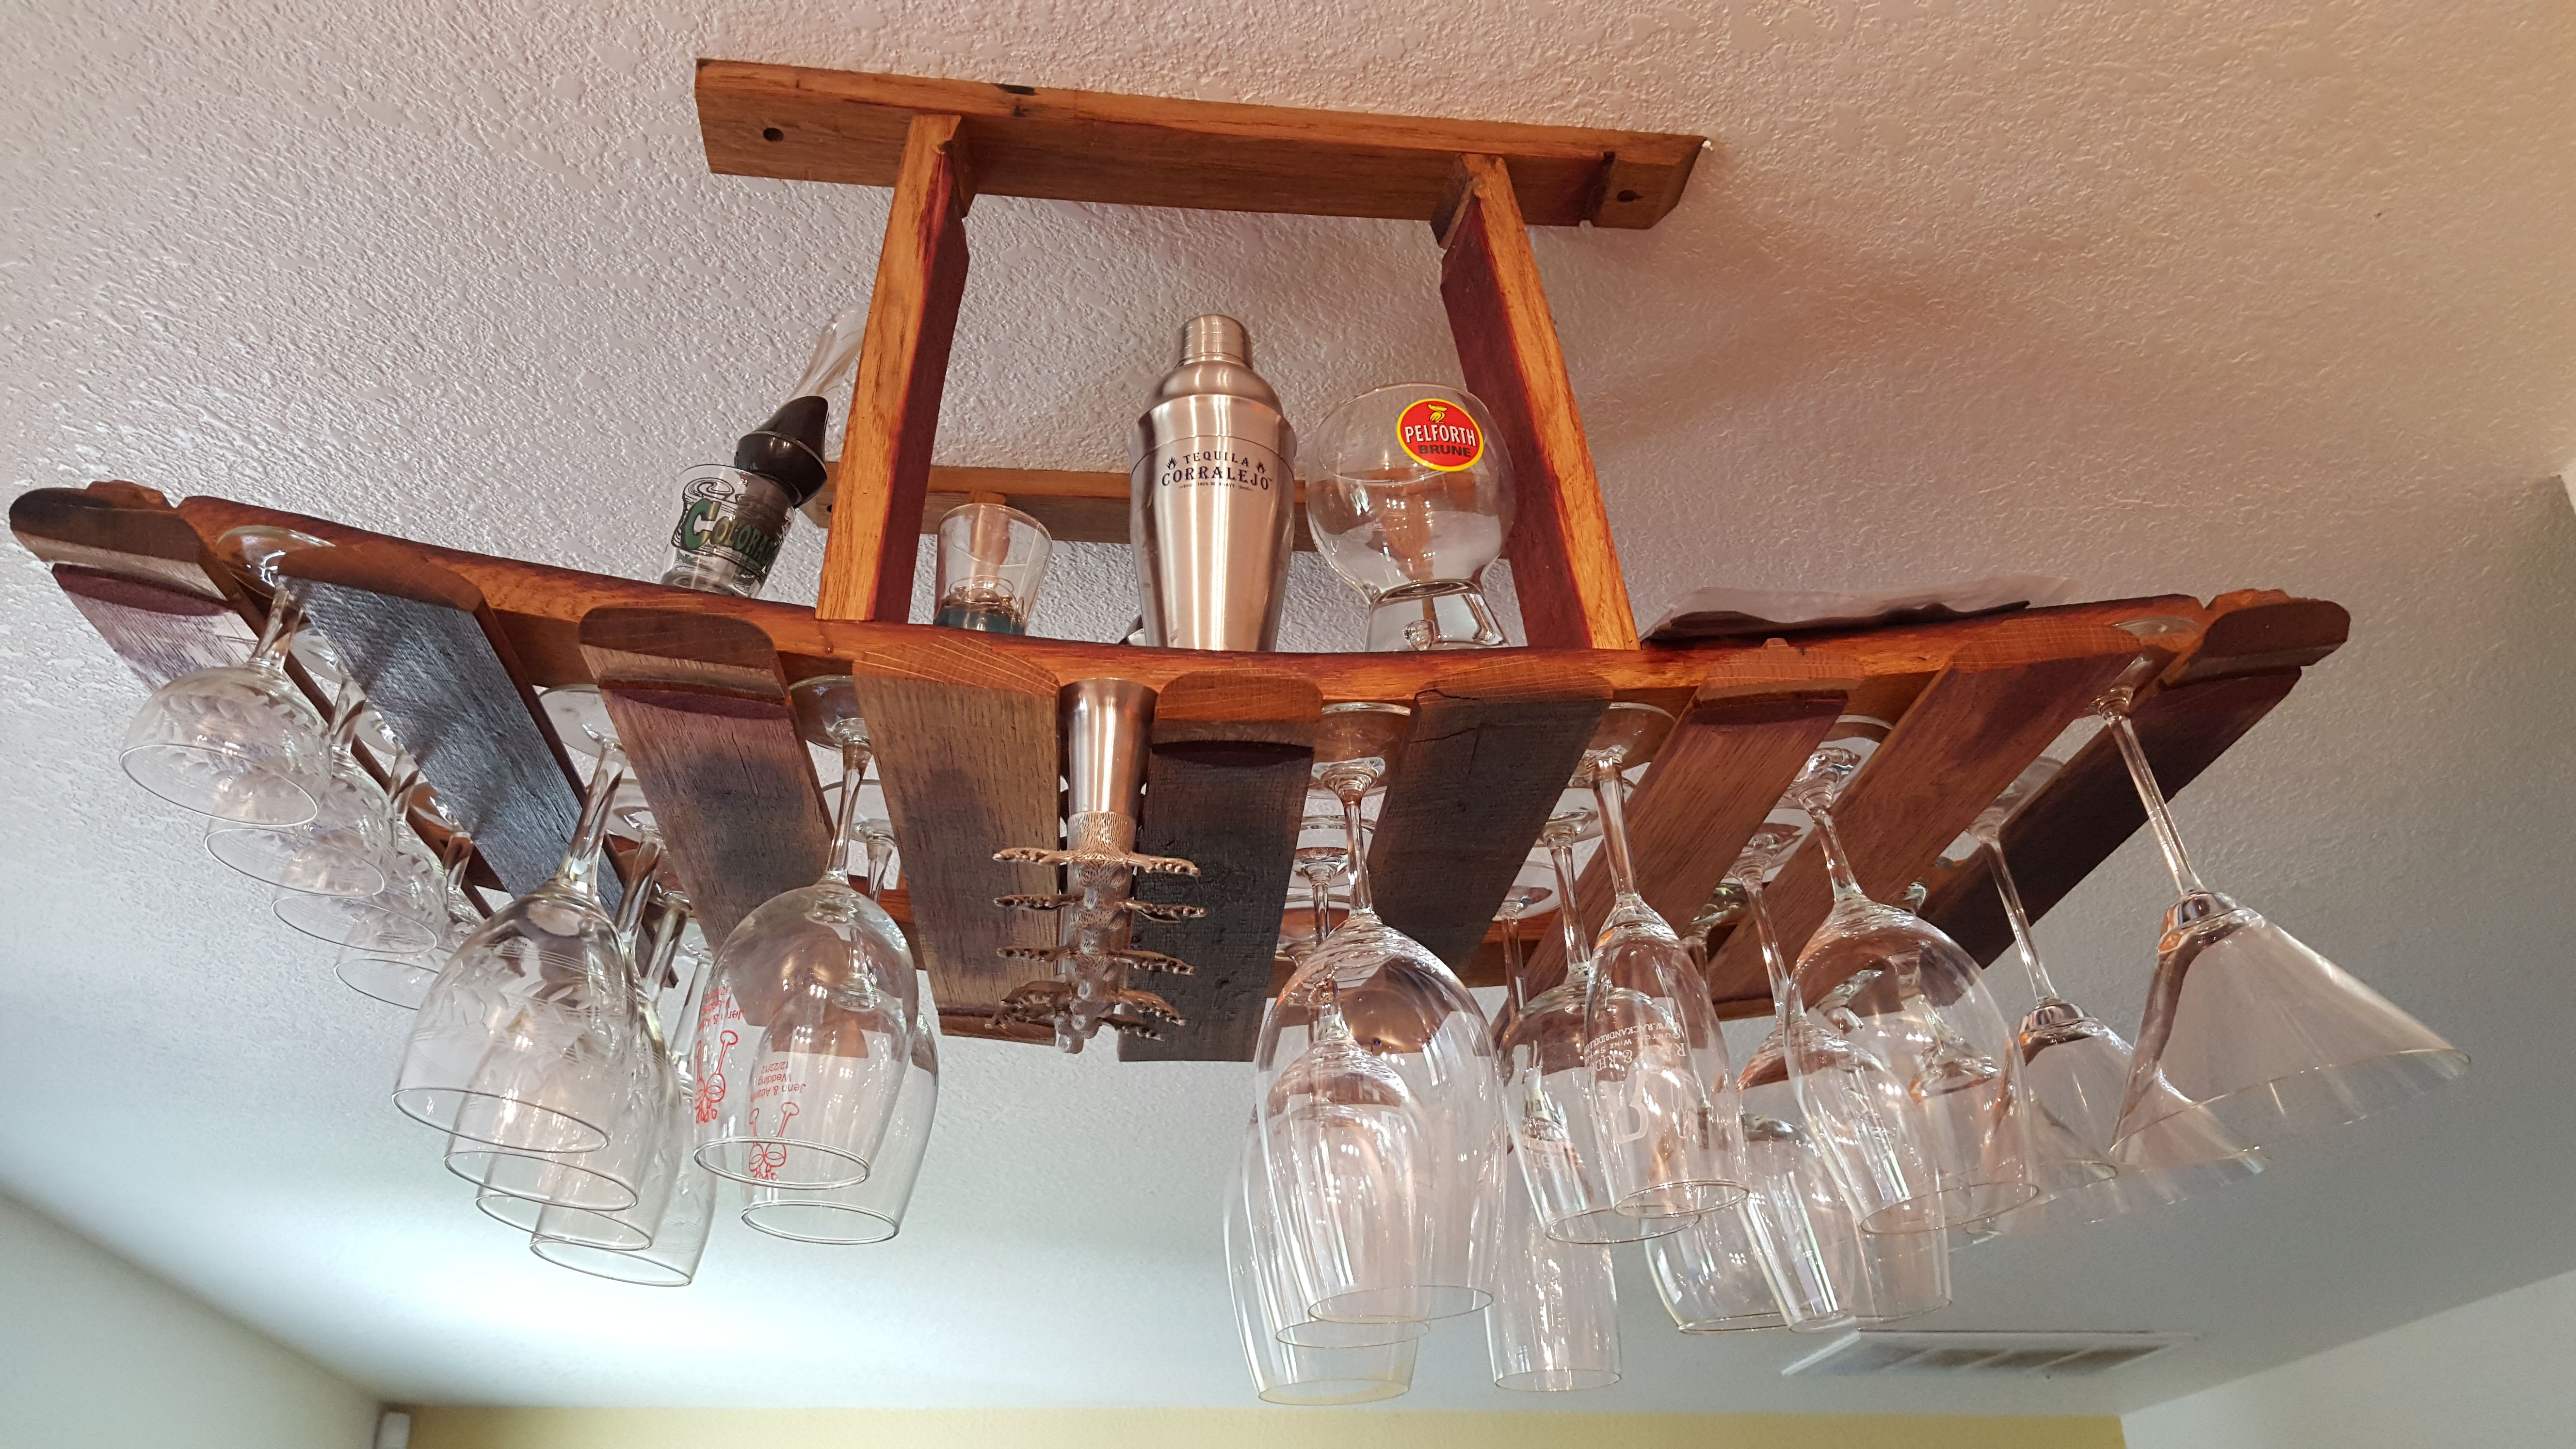 to handmade wine order racks a glass barrel light designs rack hanging made